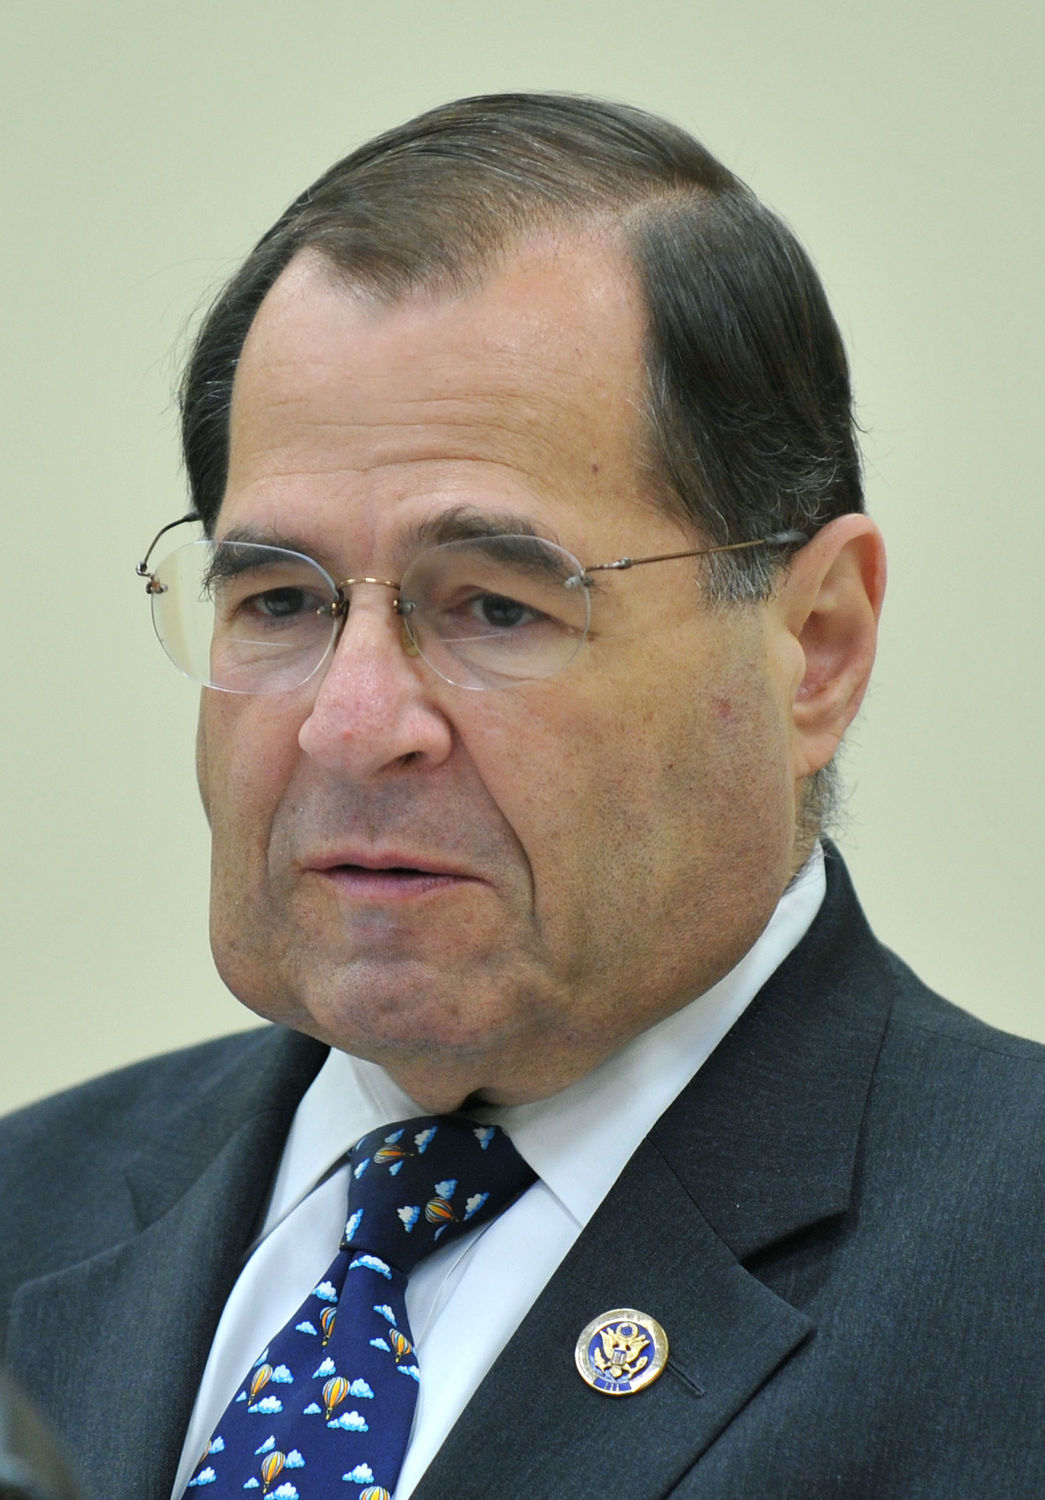 Rep. Nadler speaks on the Uniting American Families Act in Washington